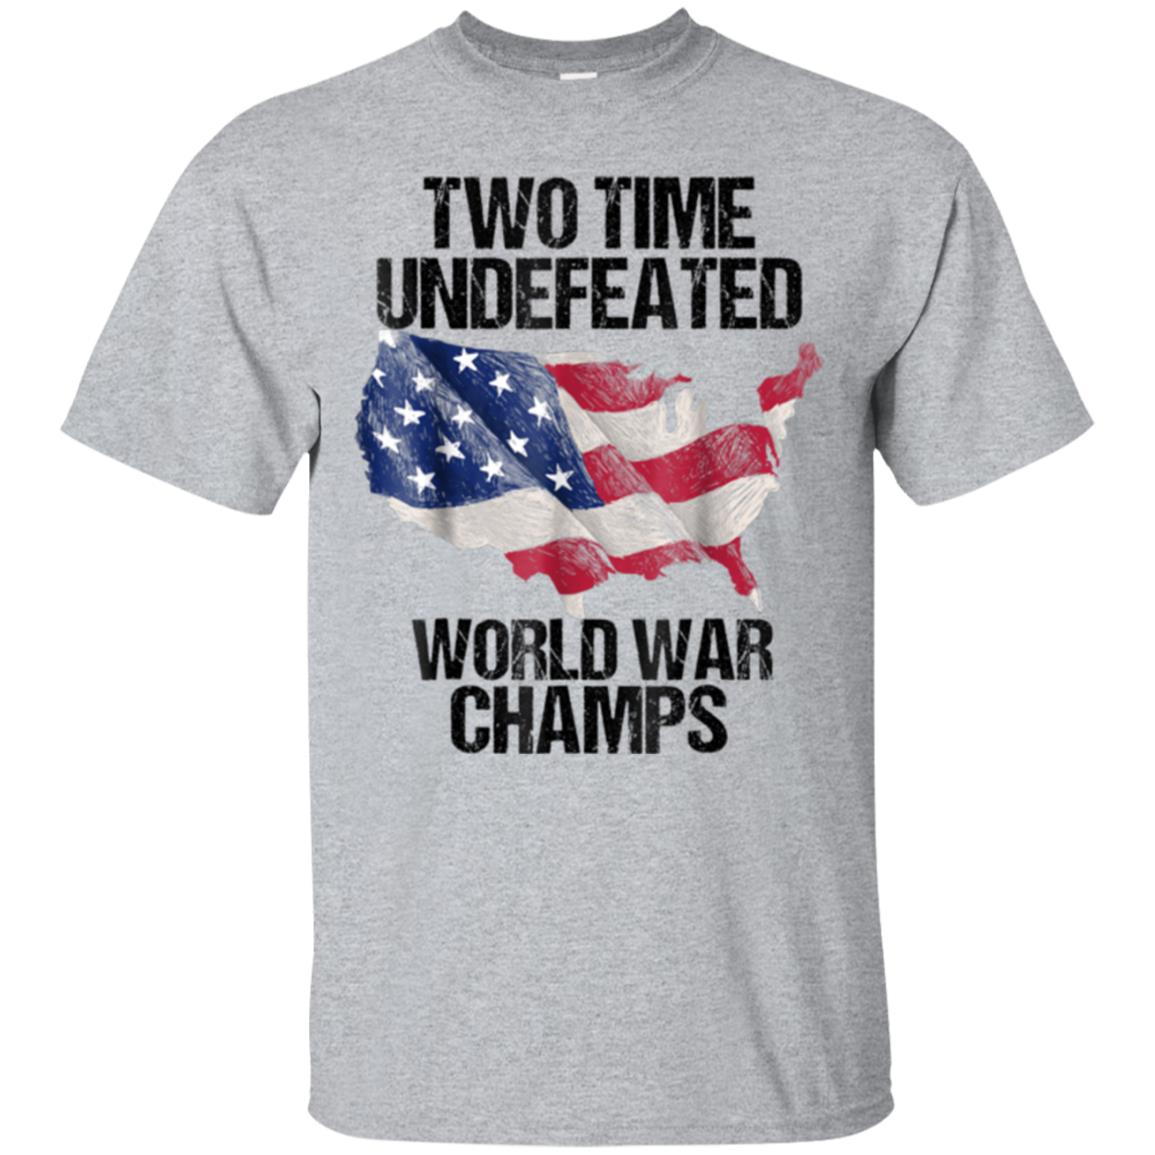 Two Times Undefeated World War Champs Veterans Day T-Shirt 99promocode